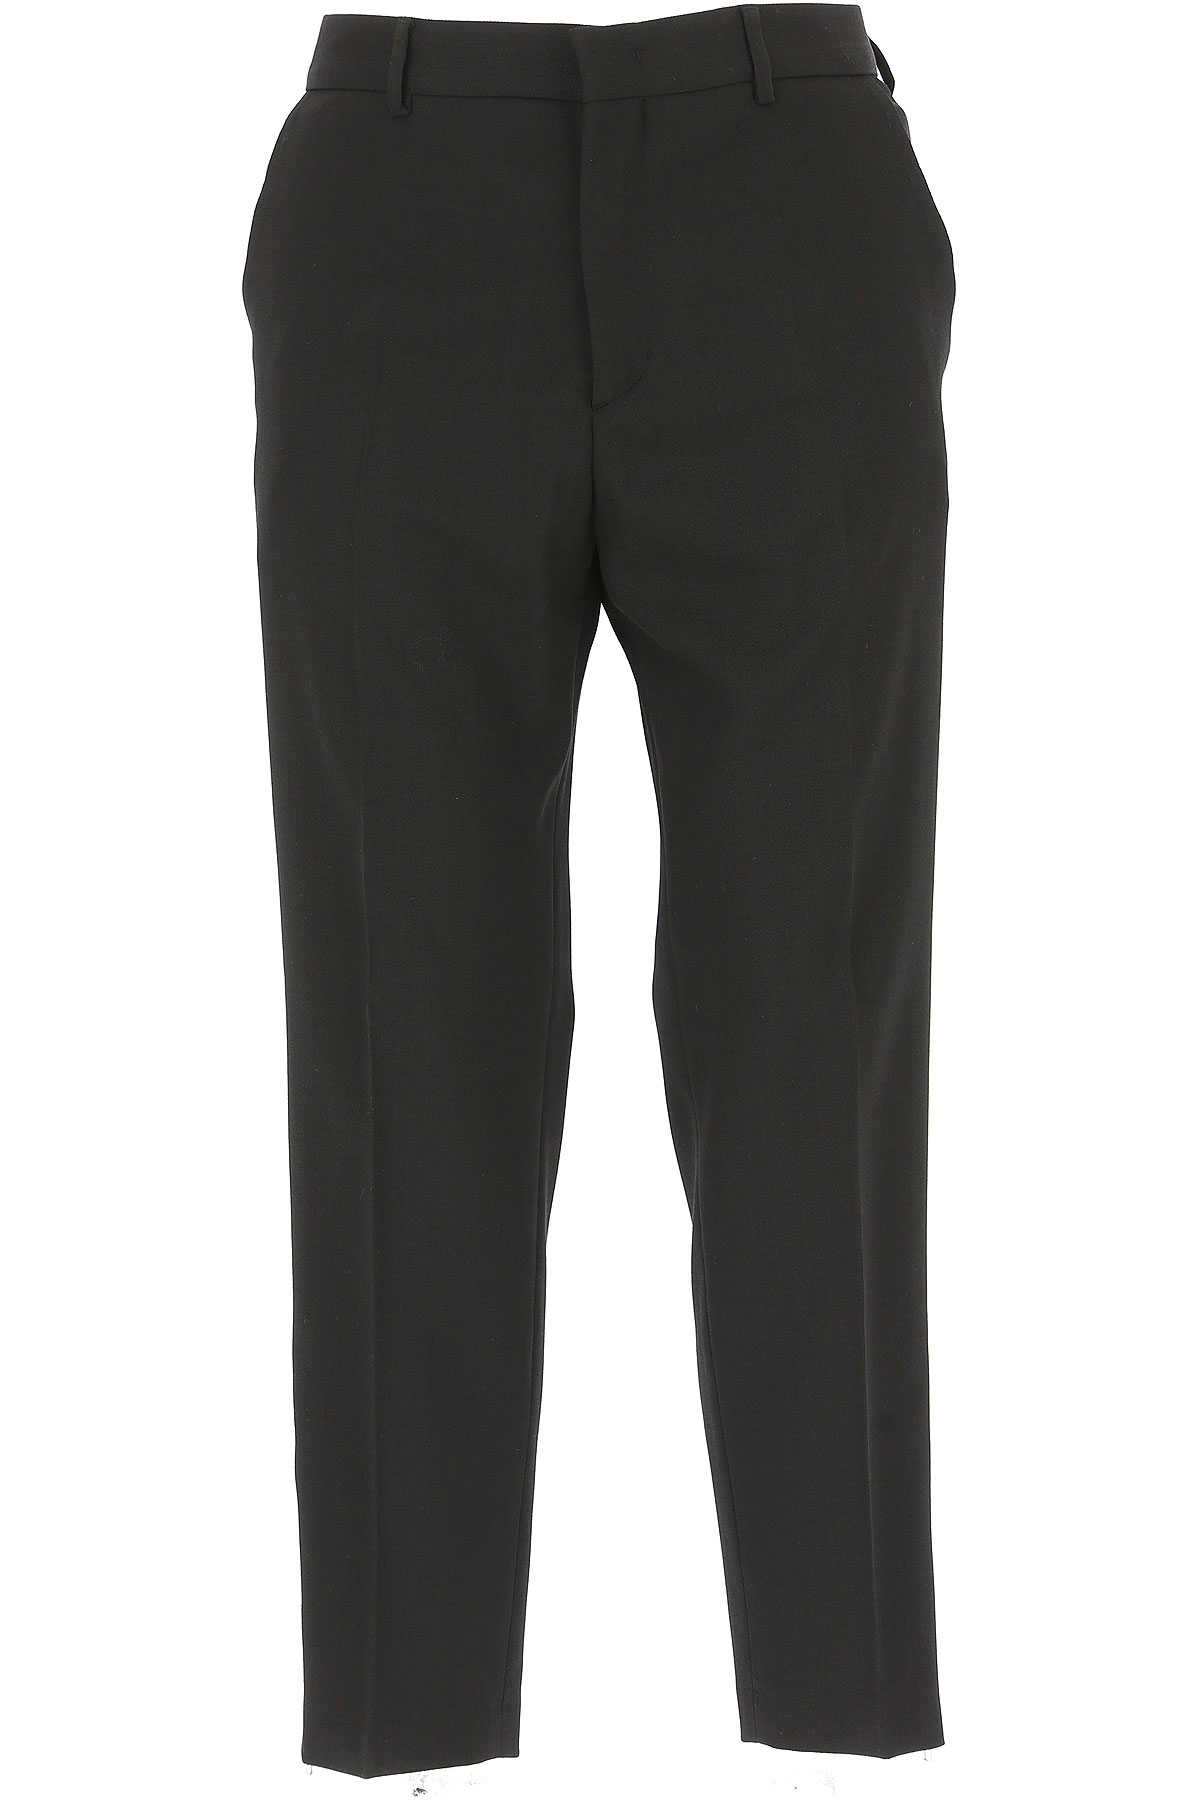 Alexander McQueen McQ Pants for Men in Outlet Black USA - GOOFASH